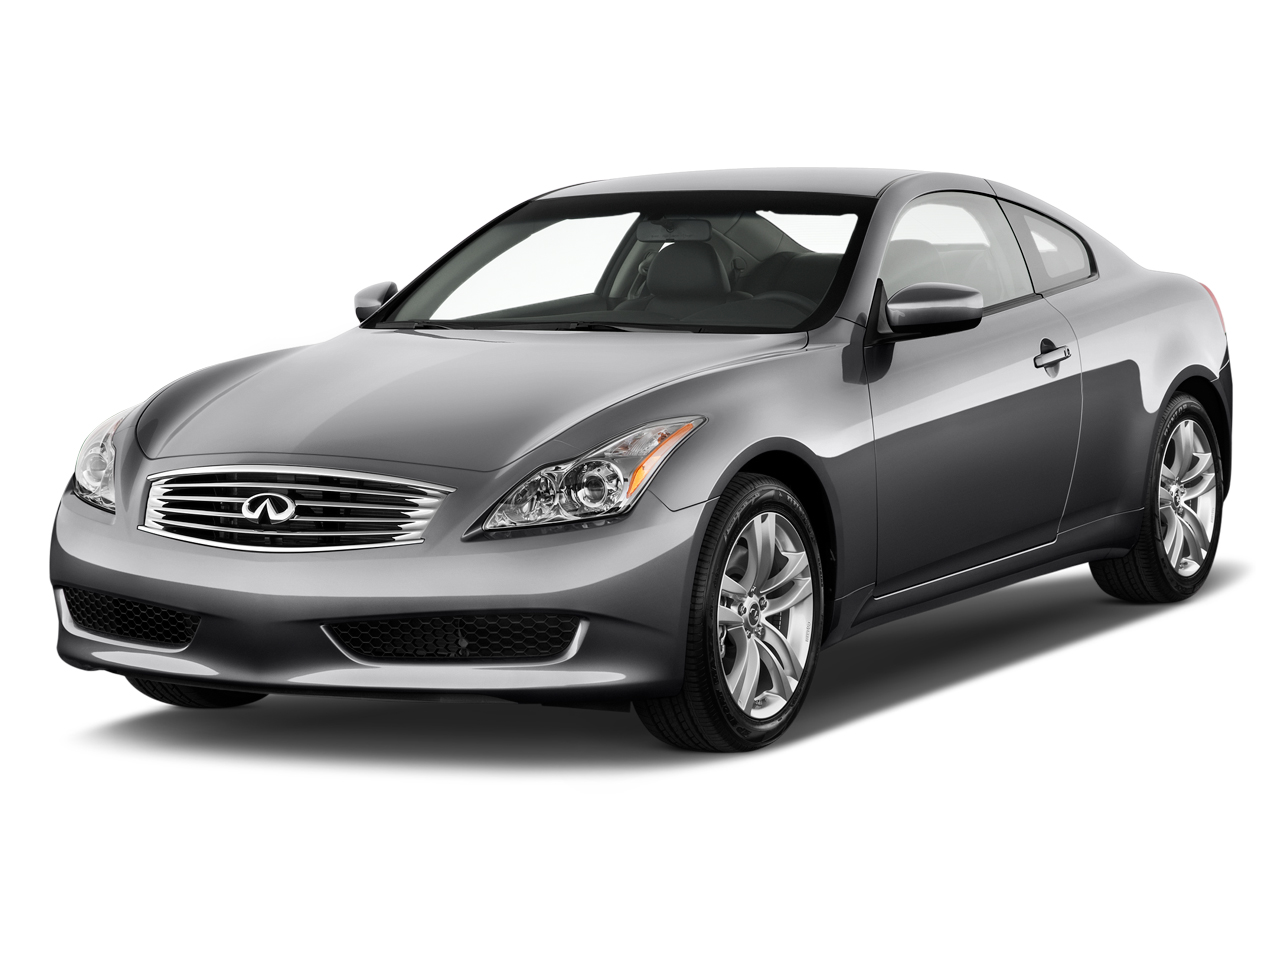 2011 infiniti g37 coupe review ratings specs prices. Black Bedroom Furniture Sets. Home Design Ideas